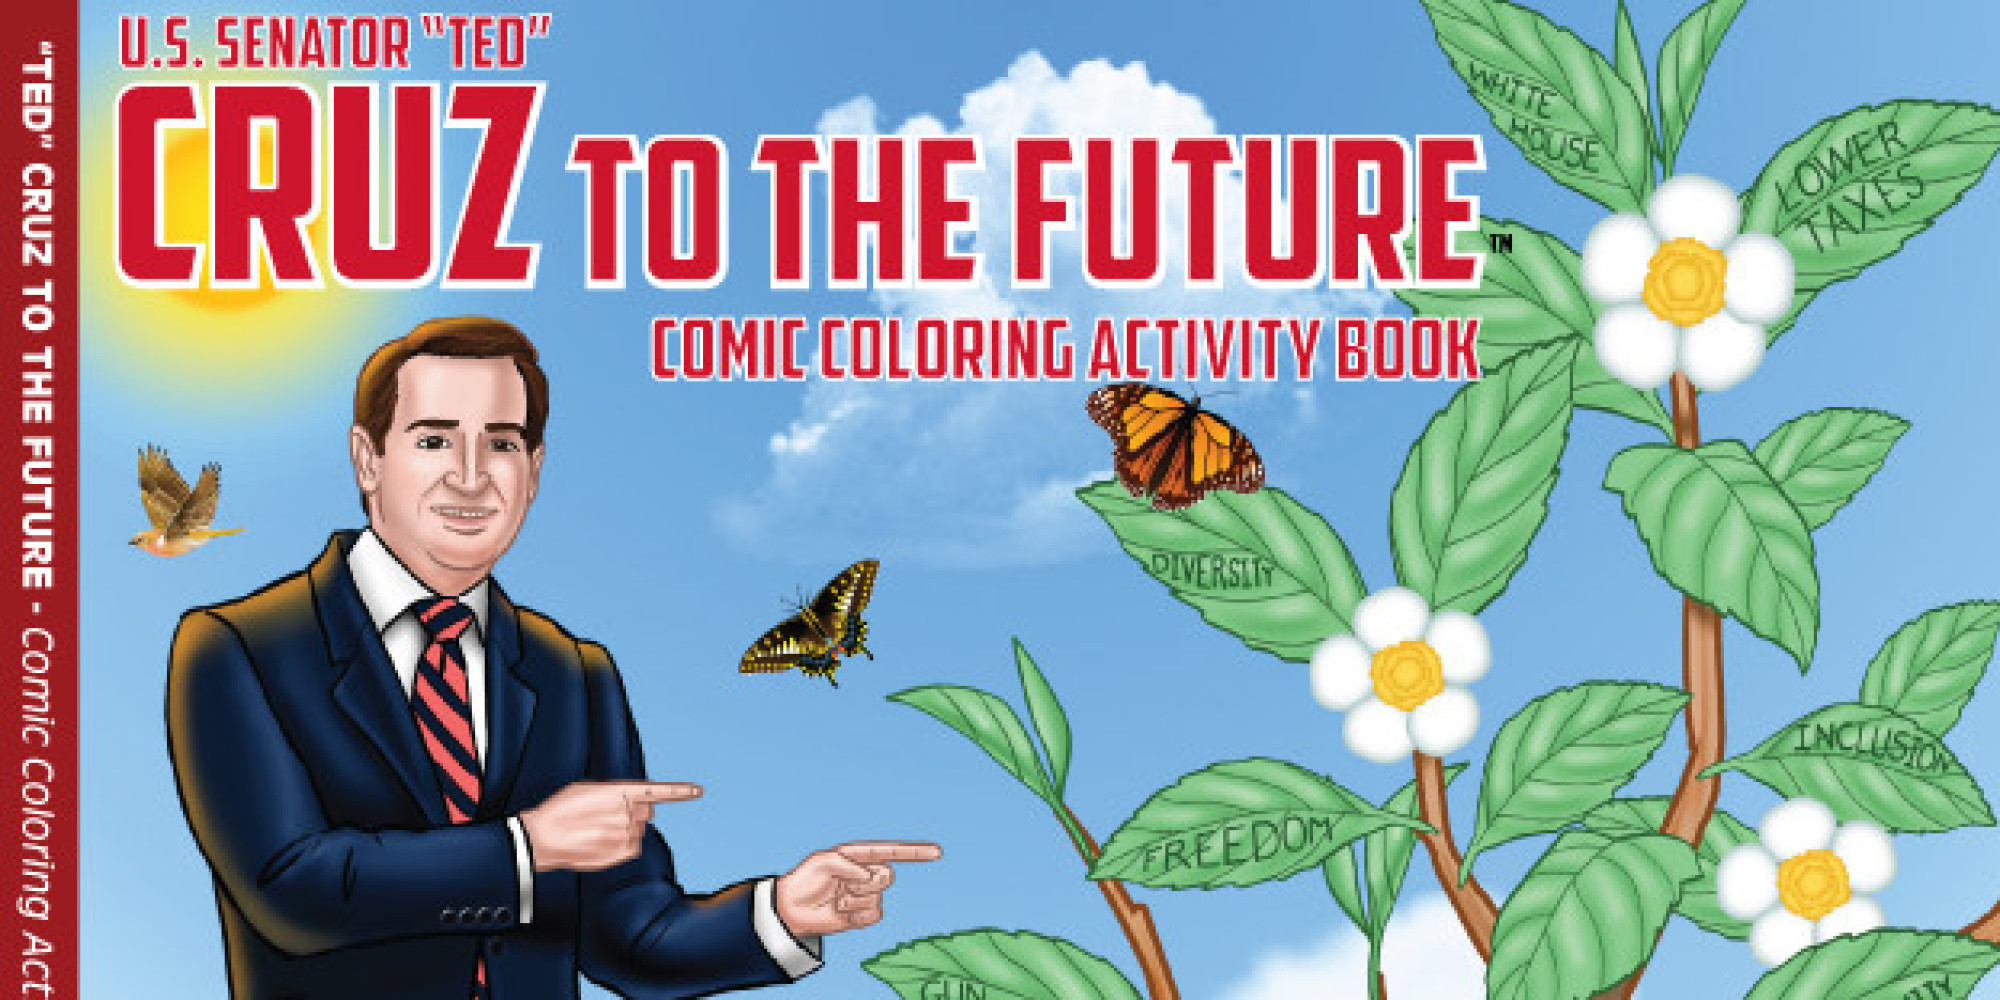 Ted Cruz To The Future Is Probably The Greatest Holiday Gift Ever